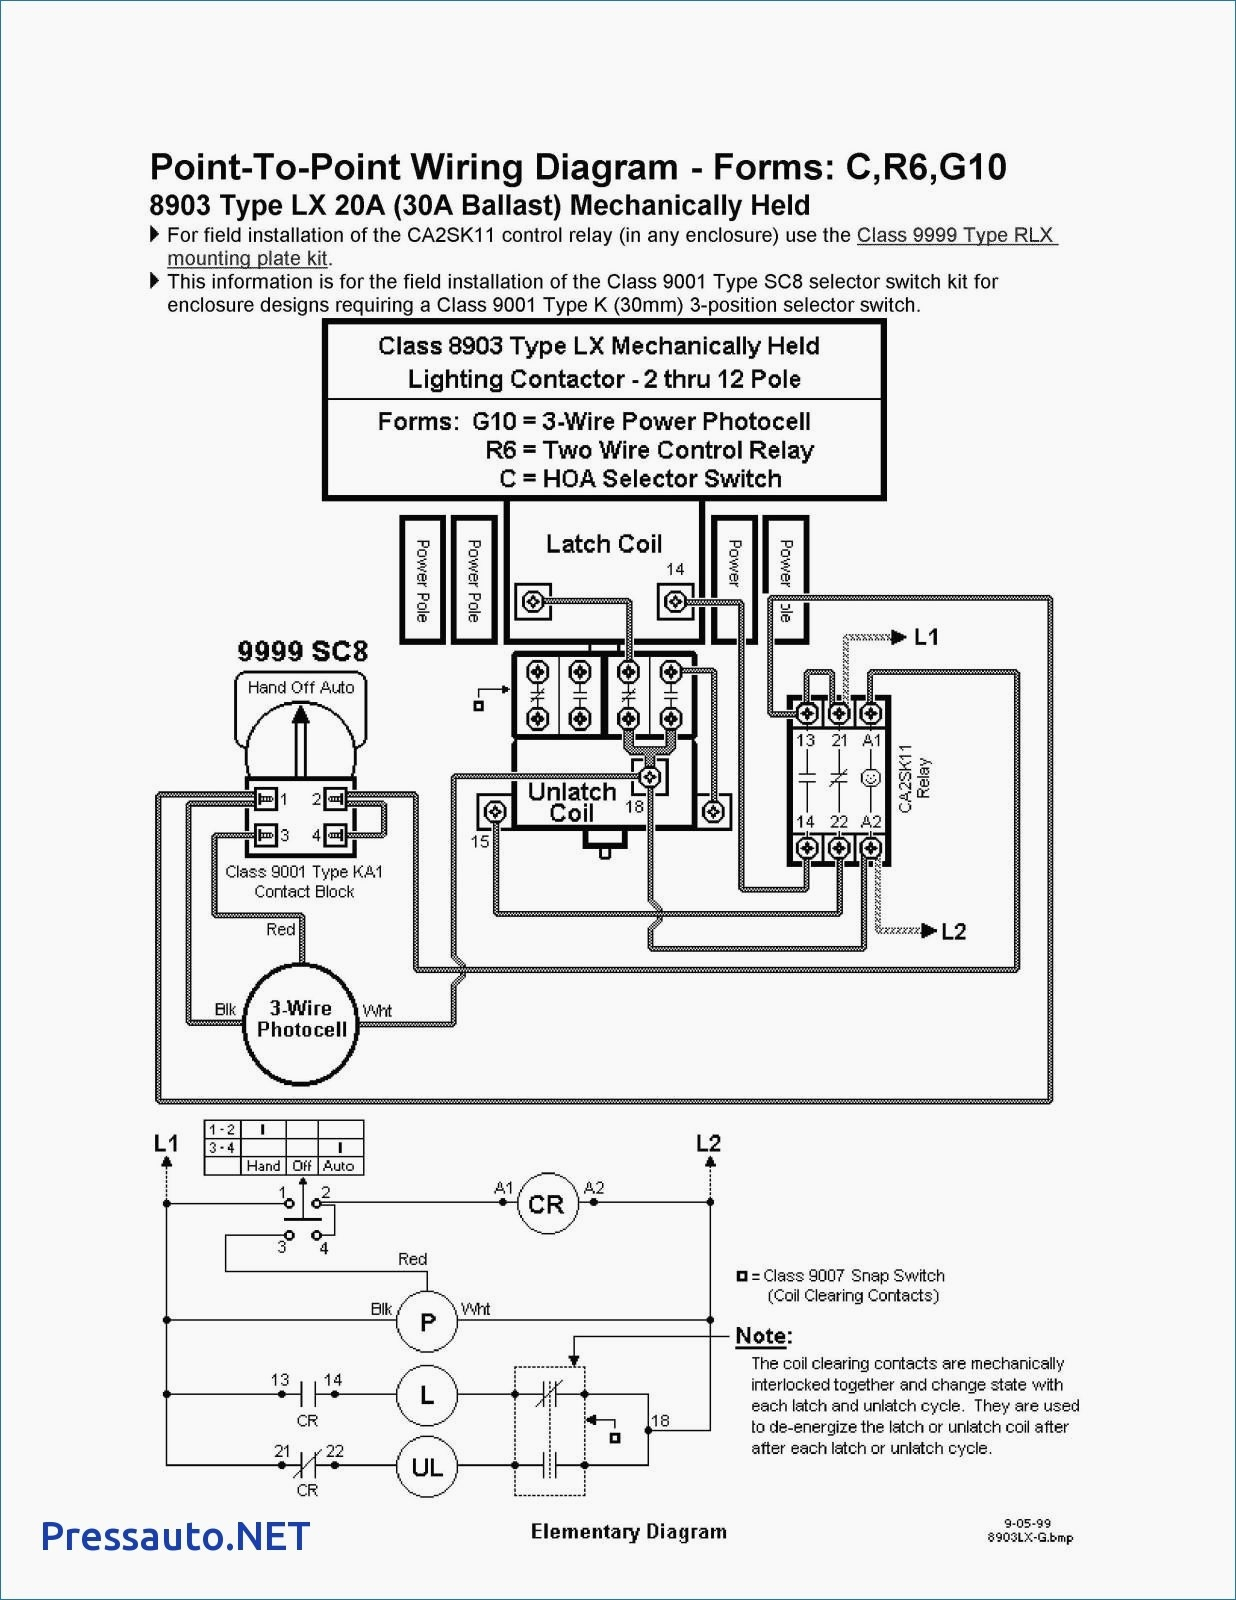 square d lighting contactor class 8903 wiring diagram. Black Bedroom Furniture Sets. Home Design Ideas